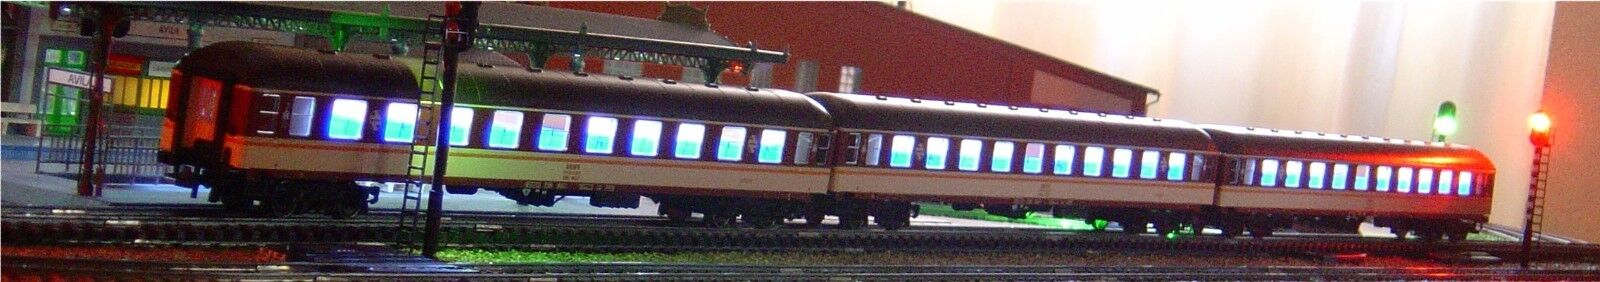 Roco HO, lighting kit set 3 cars train star ref 64043 with led